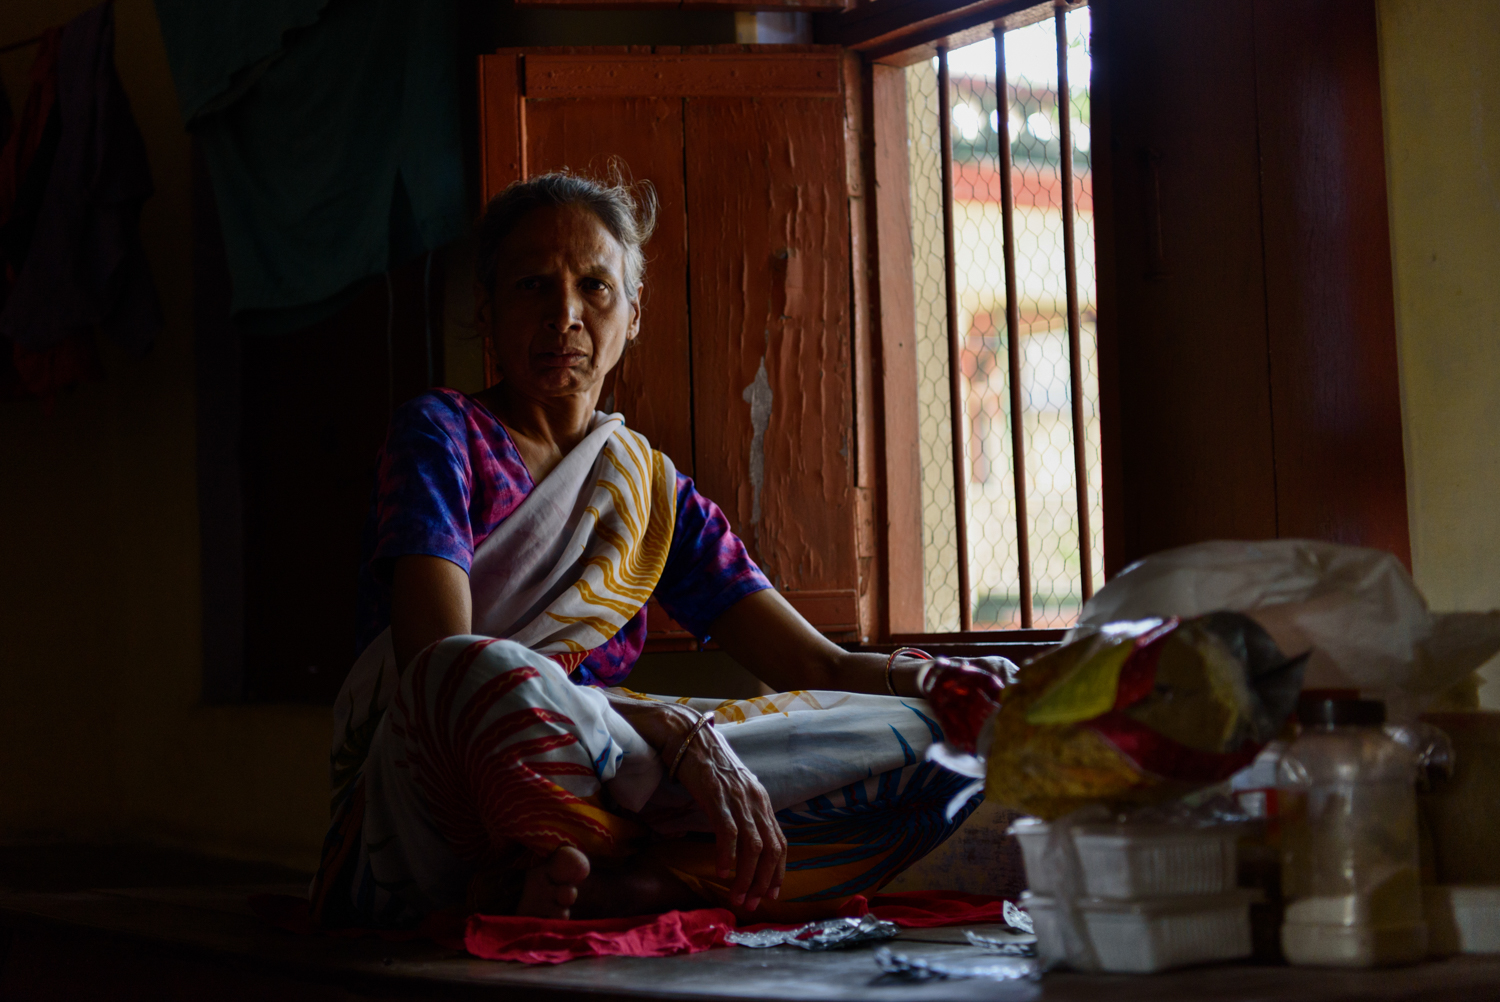 Sushila Sharma, 60, was abandoned by her family in Kolkata. She has been a resident at the Mumukshu Bhawan for 8 years.